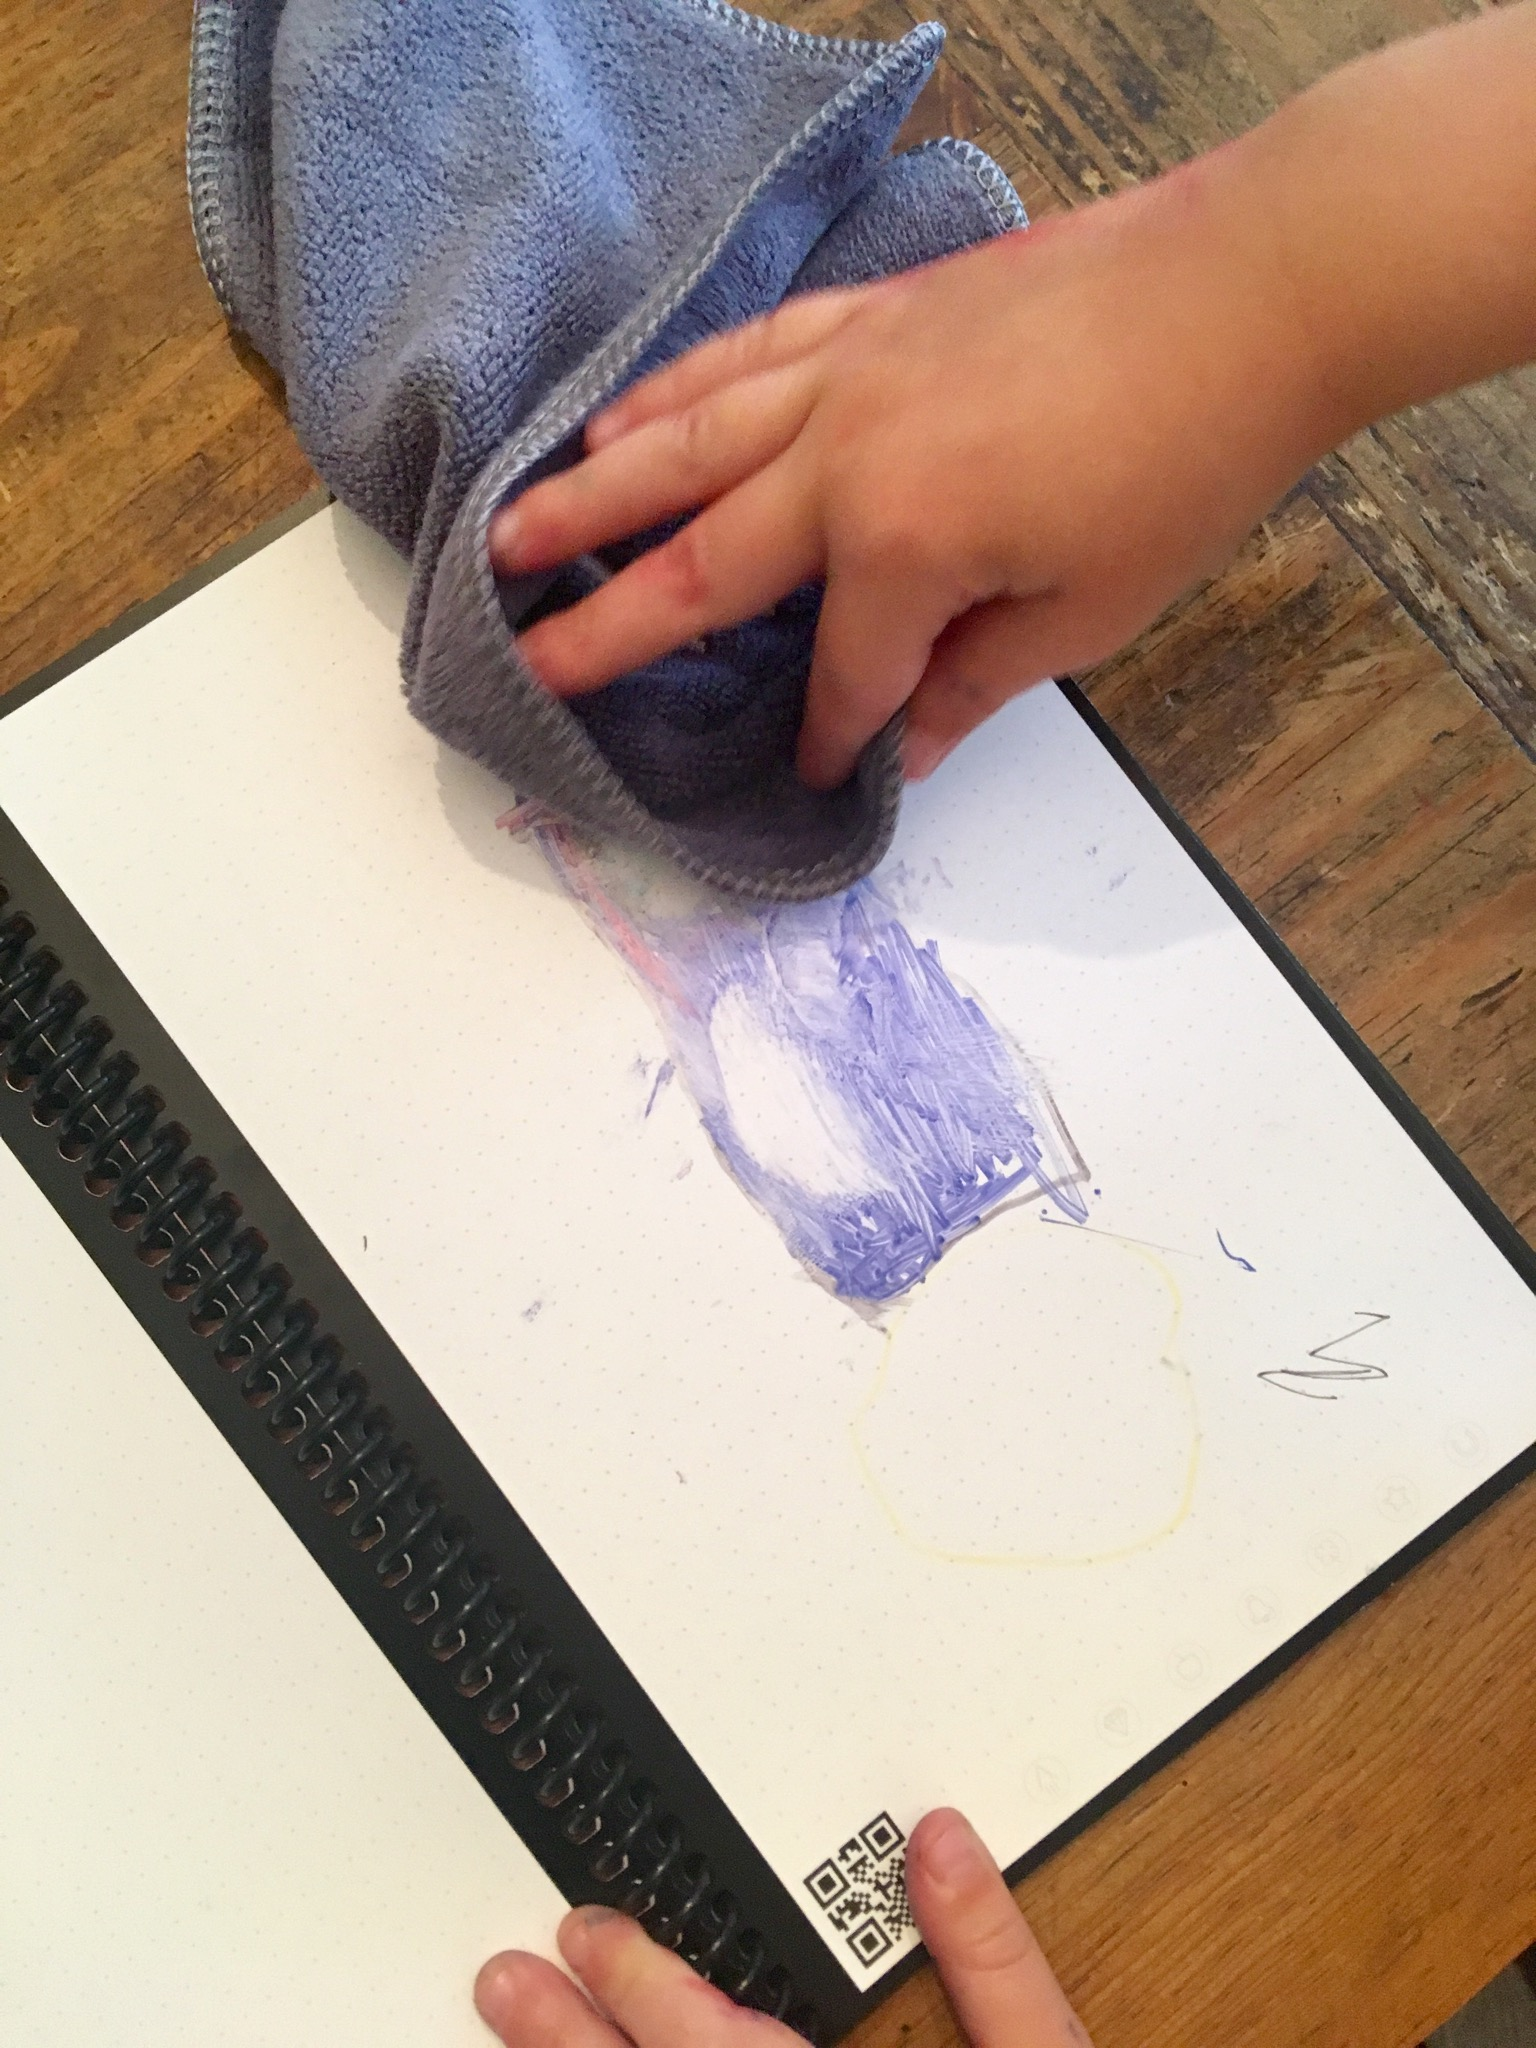 Lucas rubbing the drawing off the rocketbook everlast